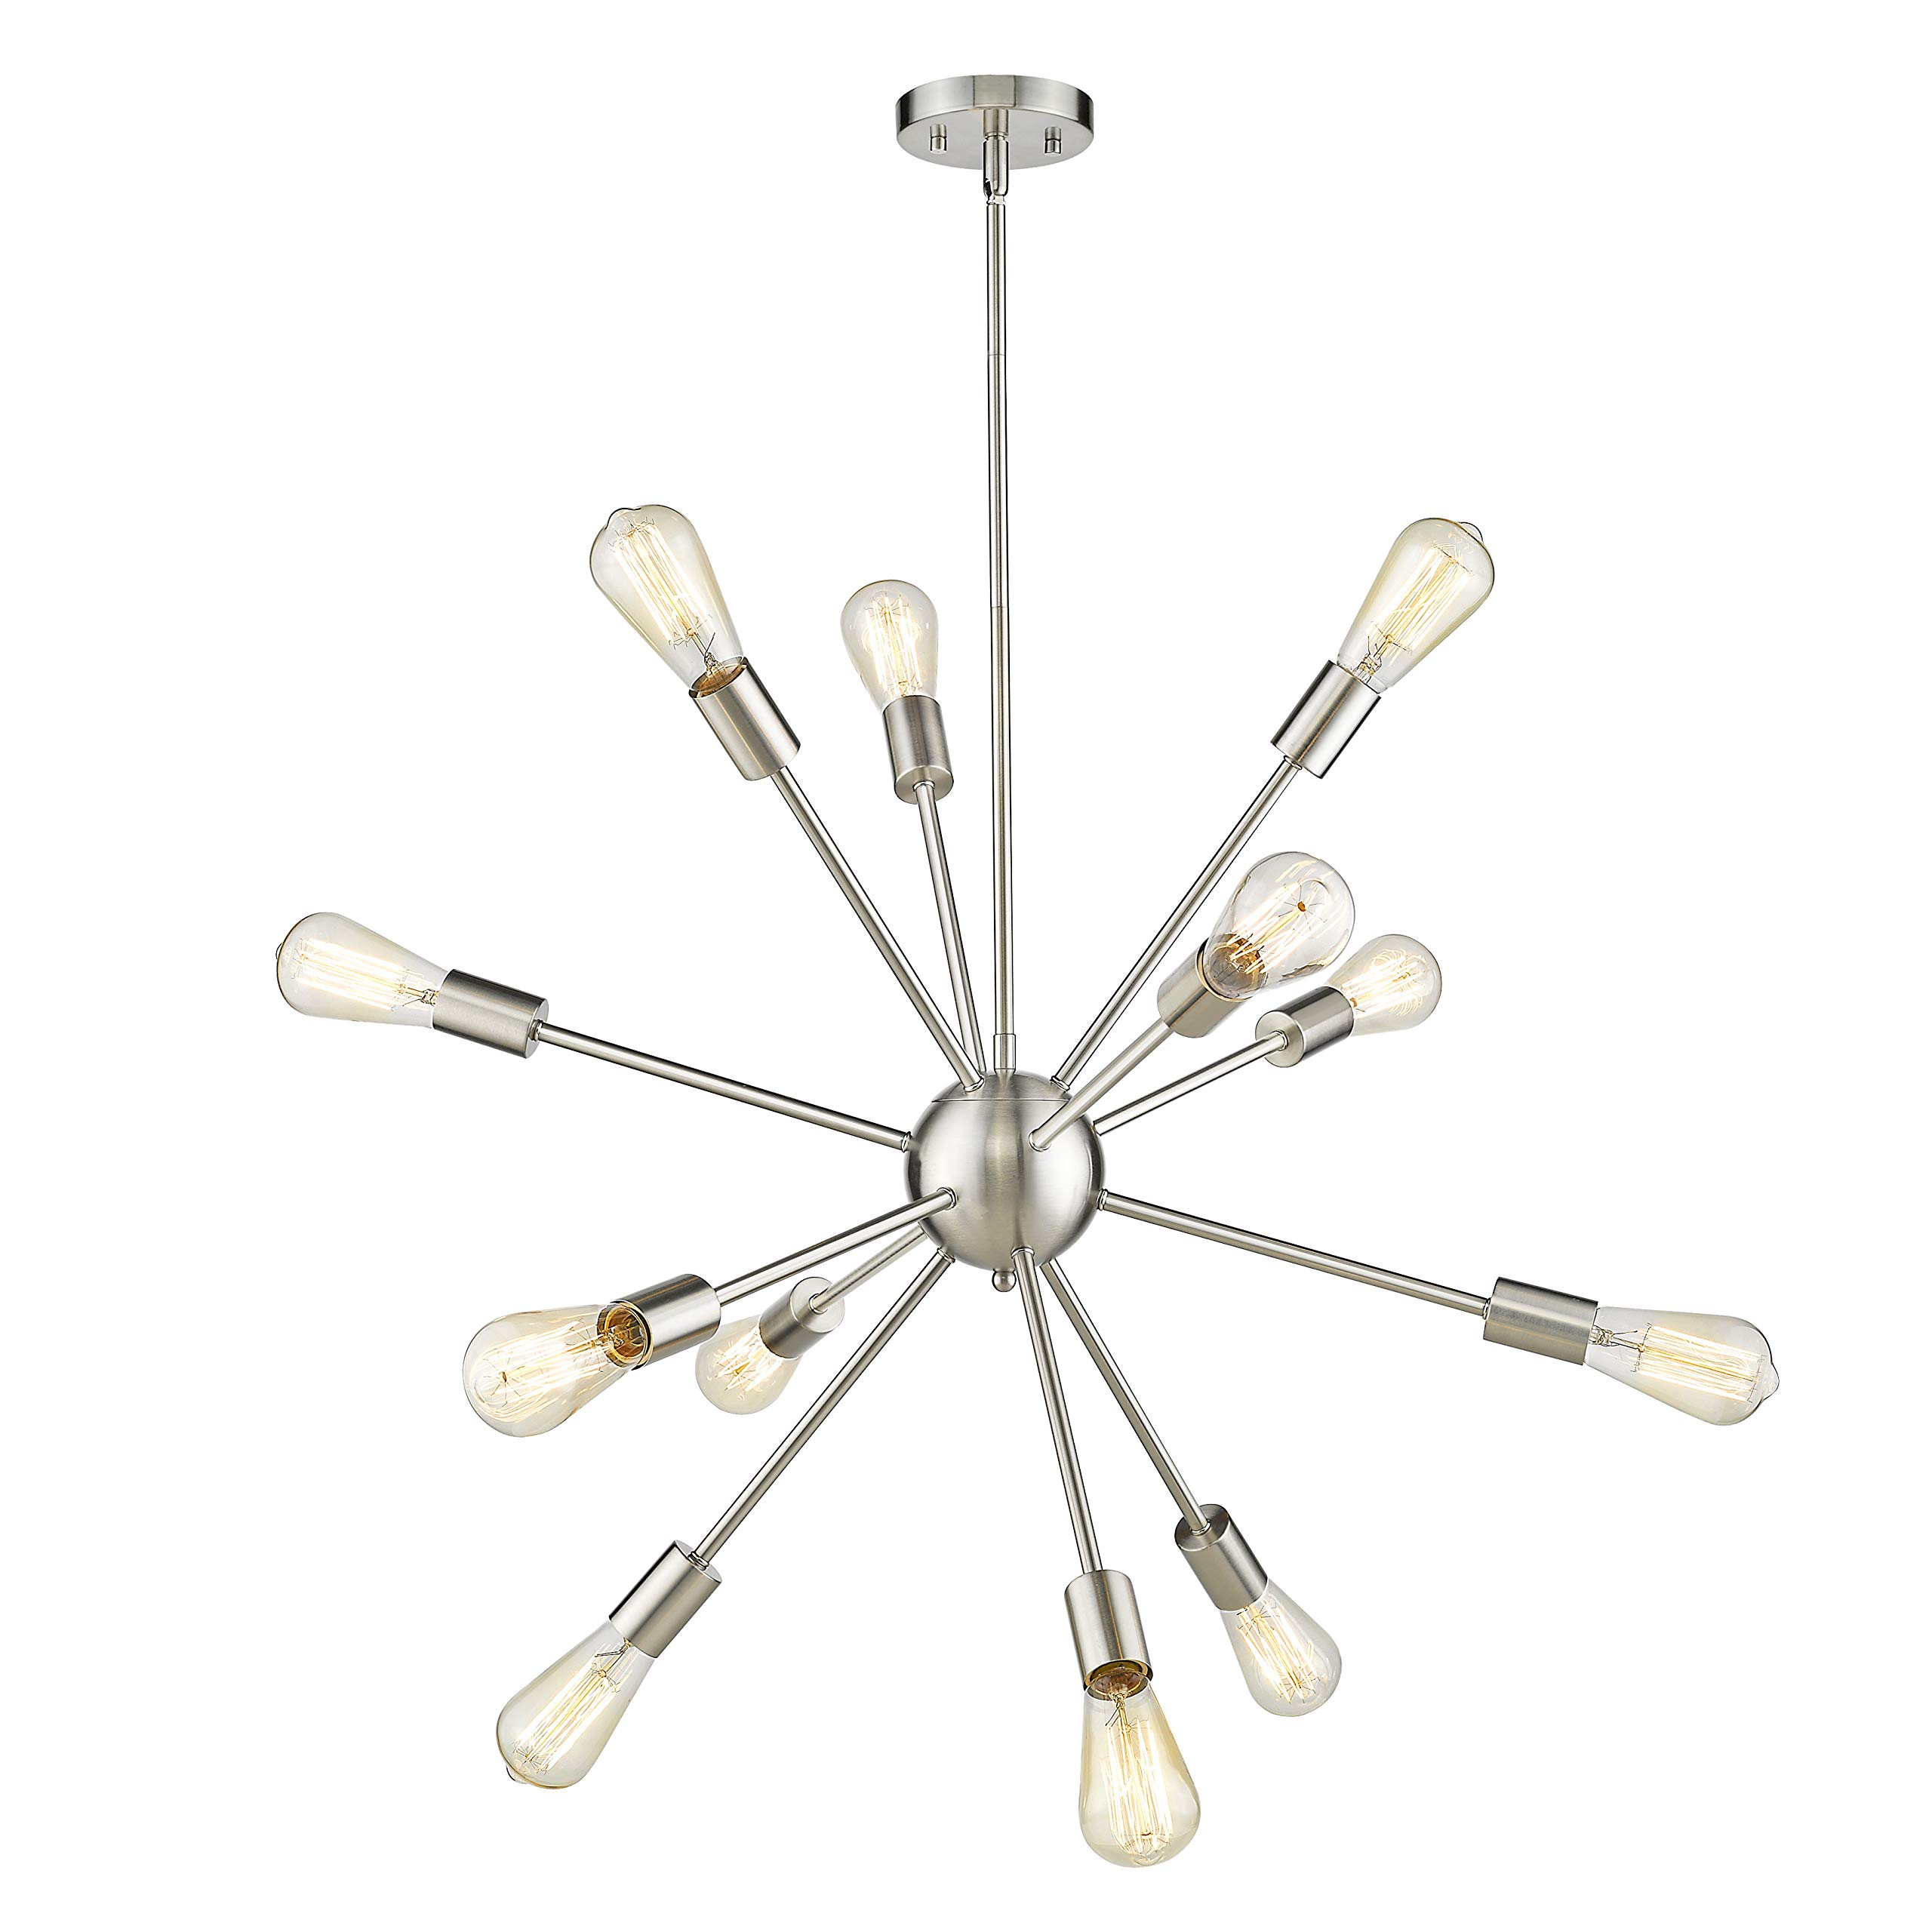 Jazava Modern Sputnik Chandelier, 12-Light Starburst Pendant Lighting, Mid-Century Hanging Light Fixture, Nickel Brushed